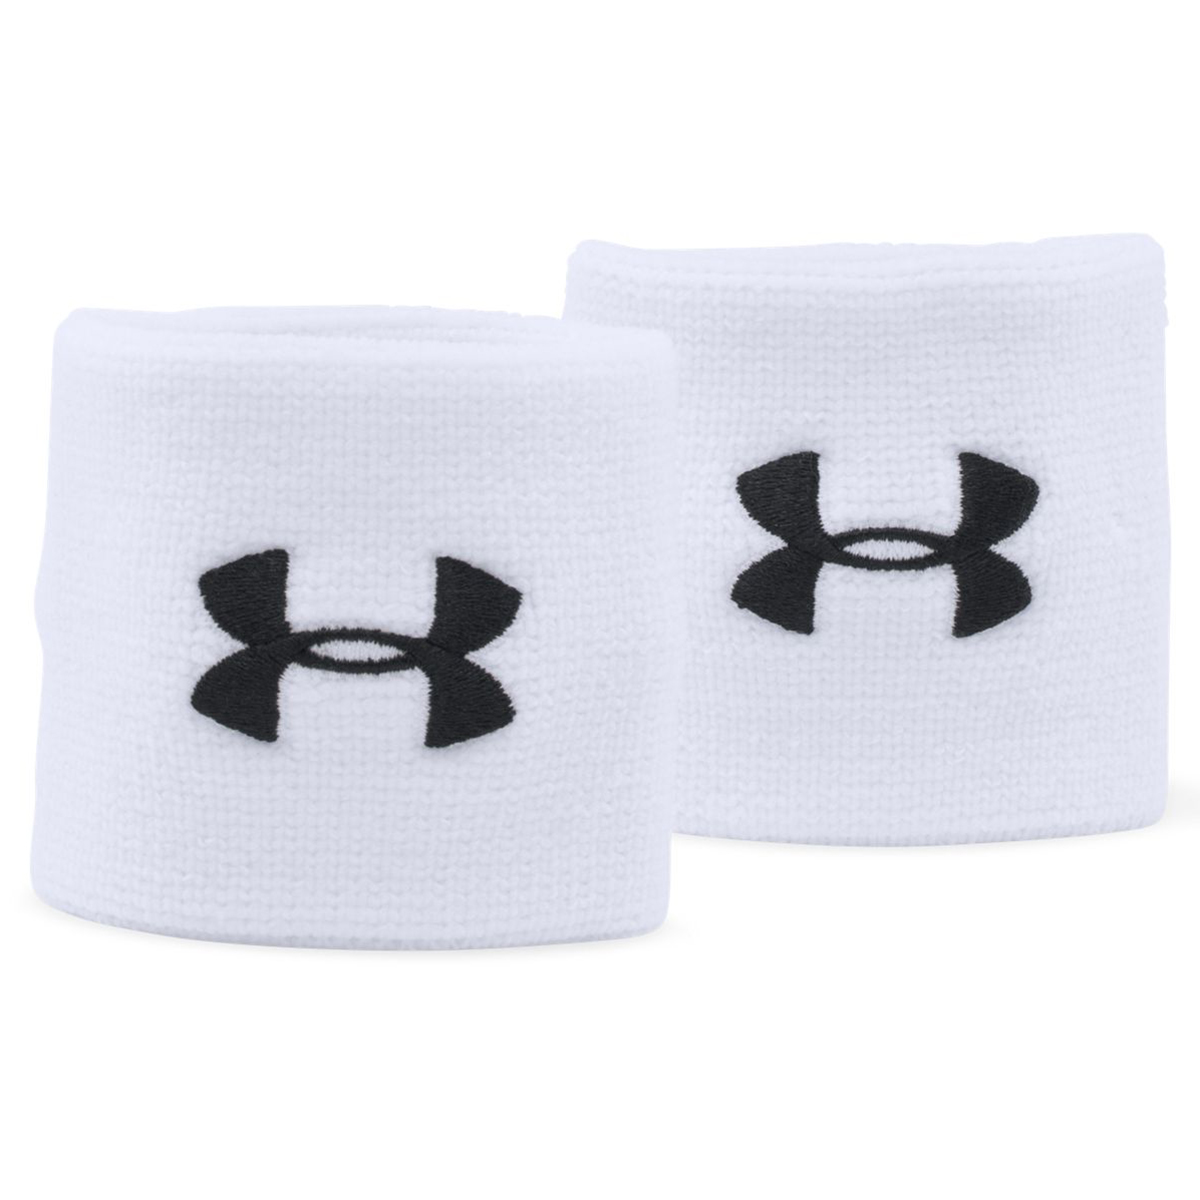 Under Armour Men's Performance Wristbands, 4-Pack